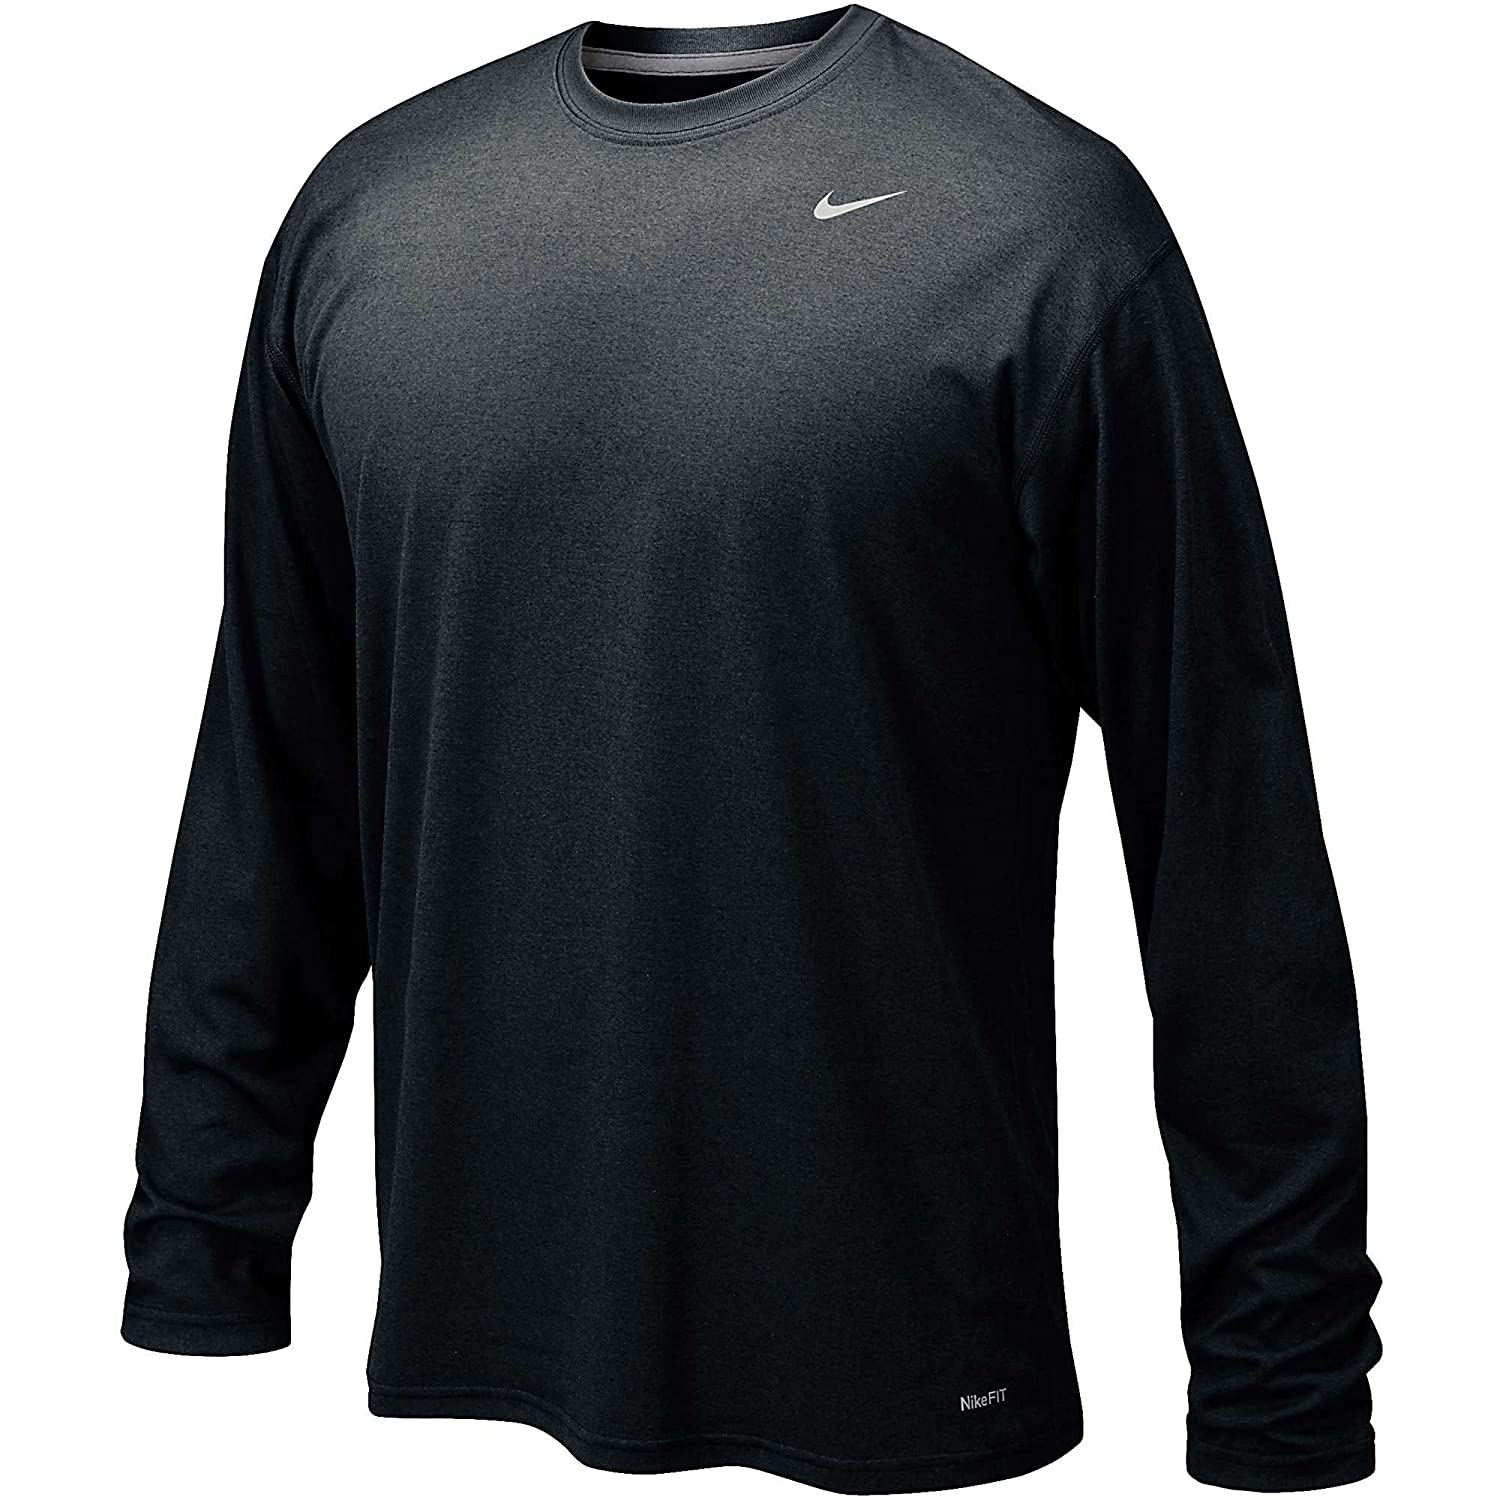 Nike Mens Legend Long Sleeve Tee, Black, XL: Amazon.es: Ropa y accesorios